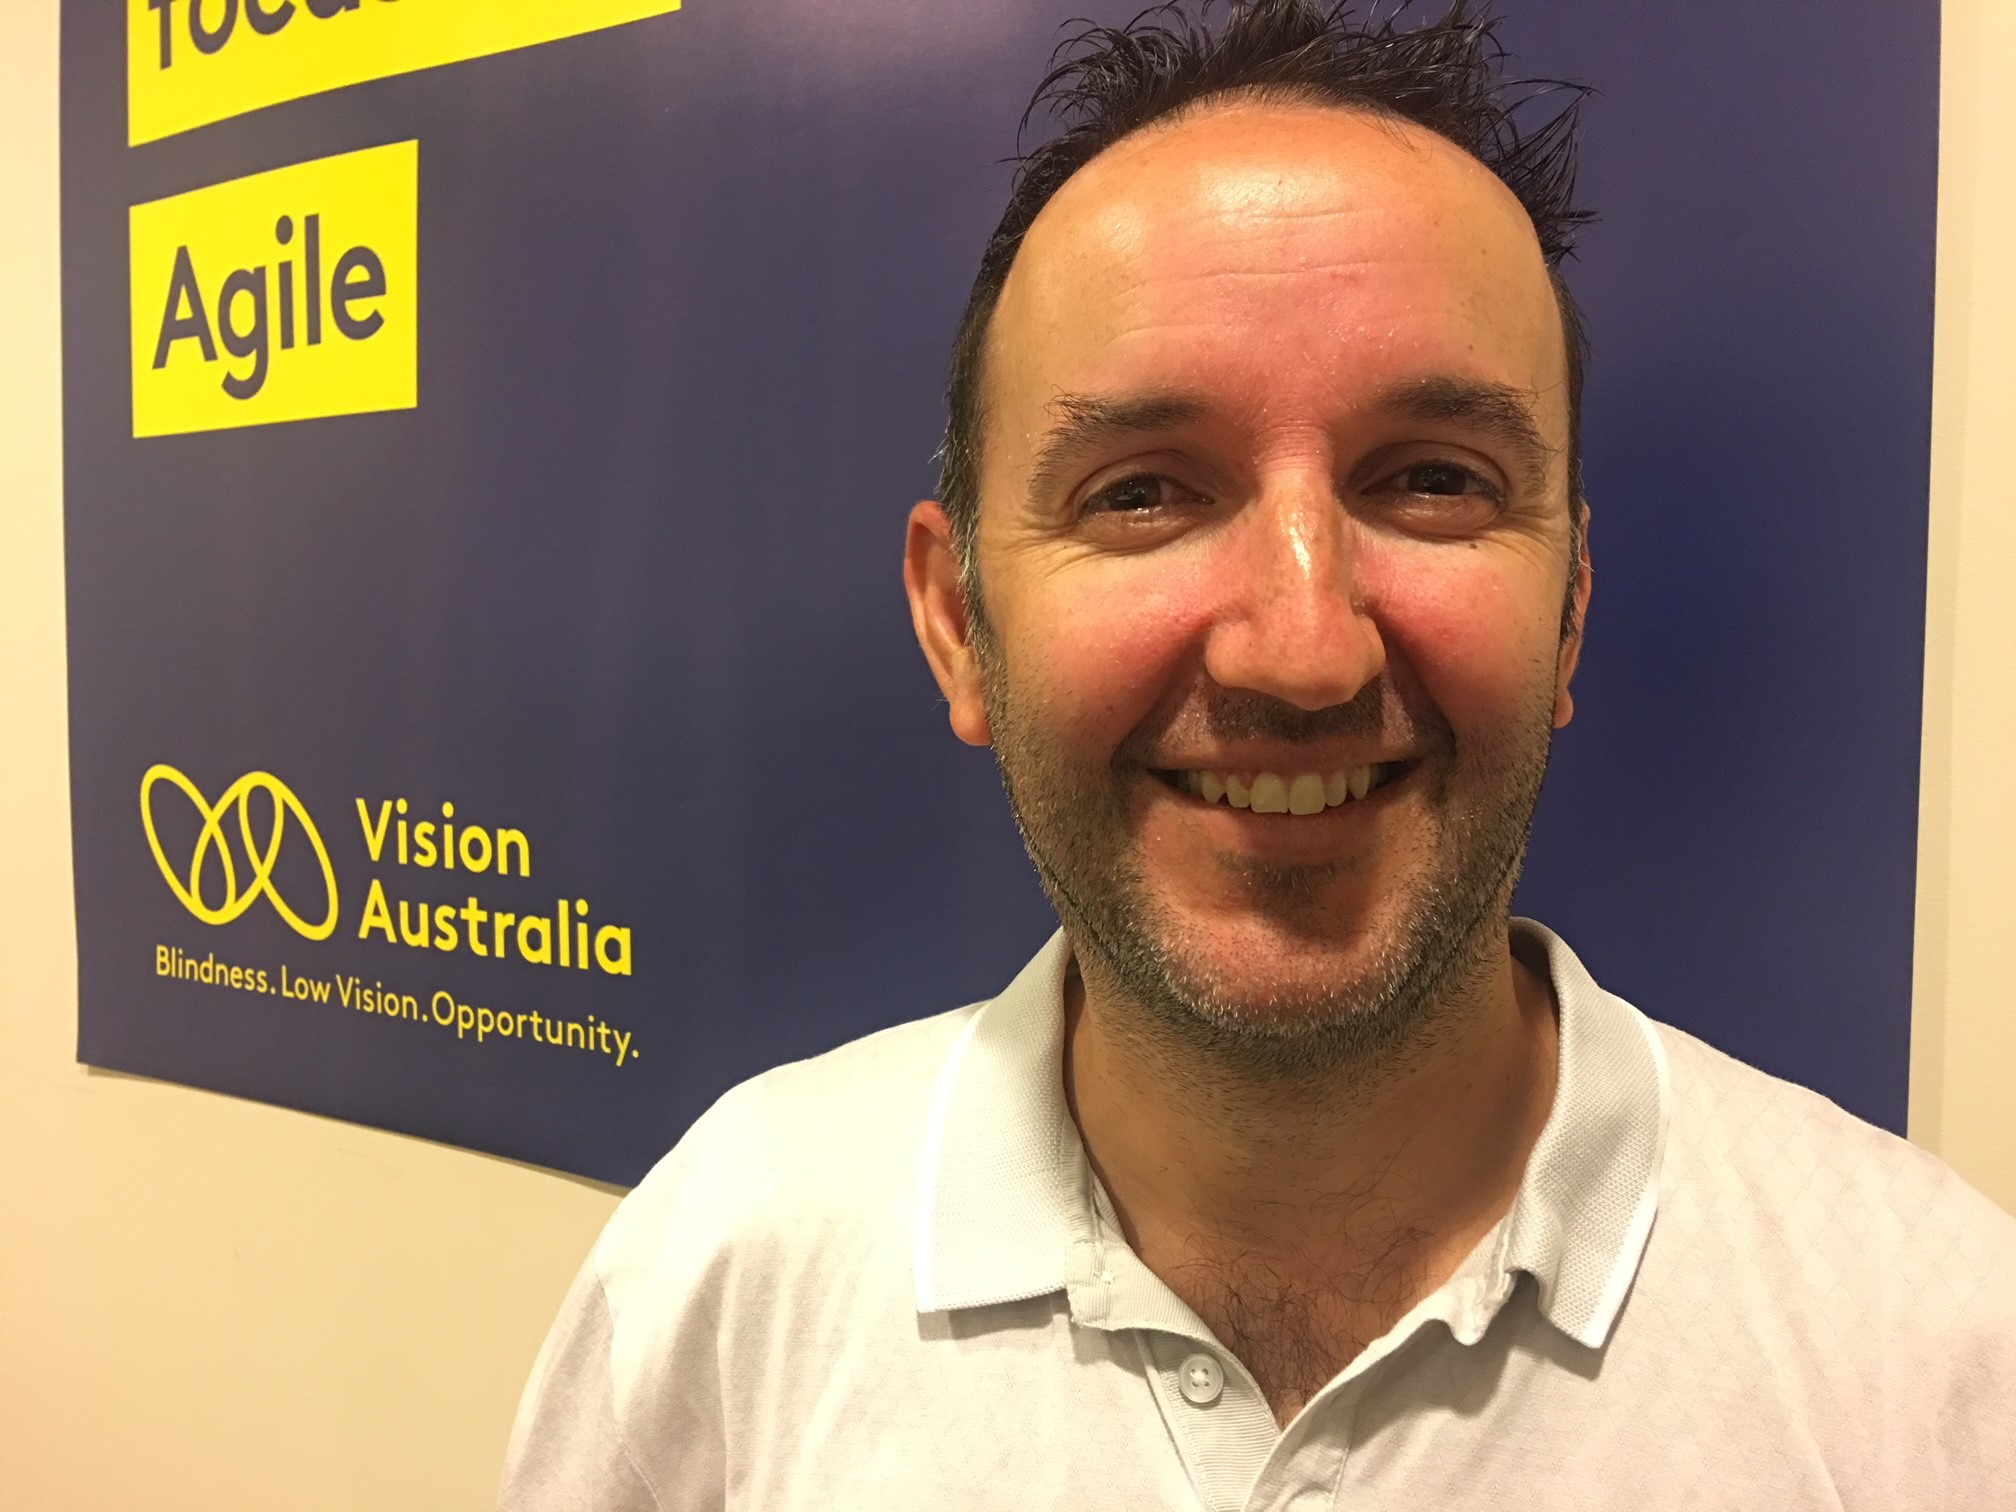 Luke Price at Vision Australia office